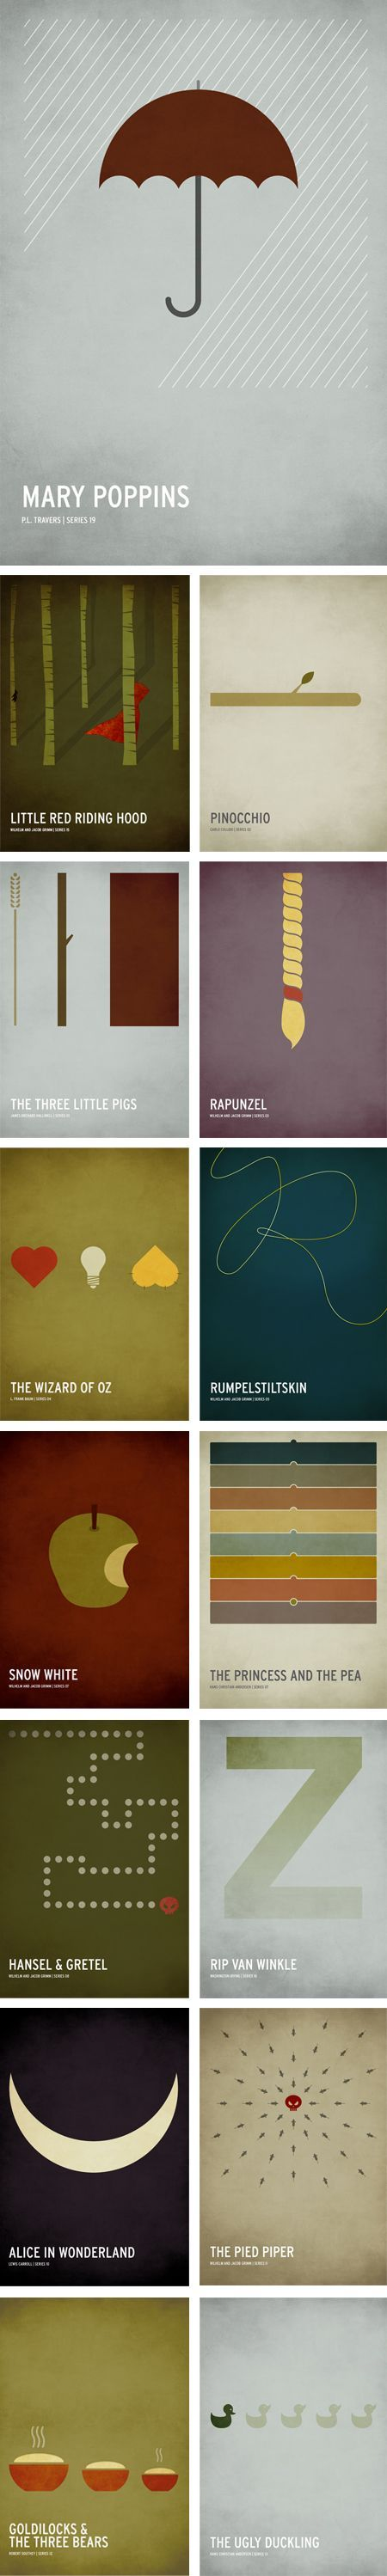 Poster design blog - Christian Jackson Of Square Inch Design Created A Series Of Hyper Minimalist Poster Designs